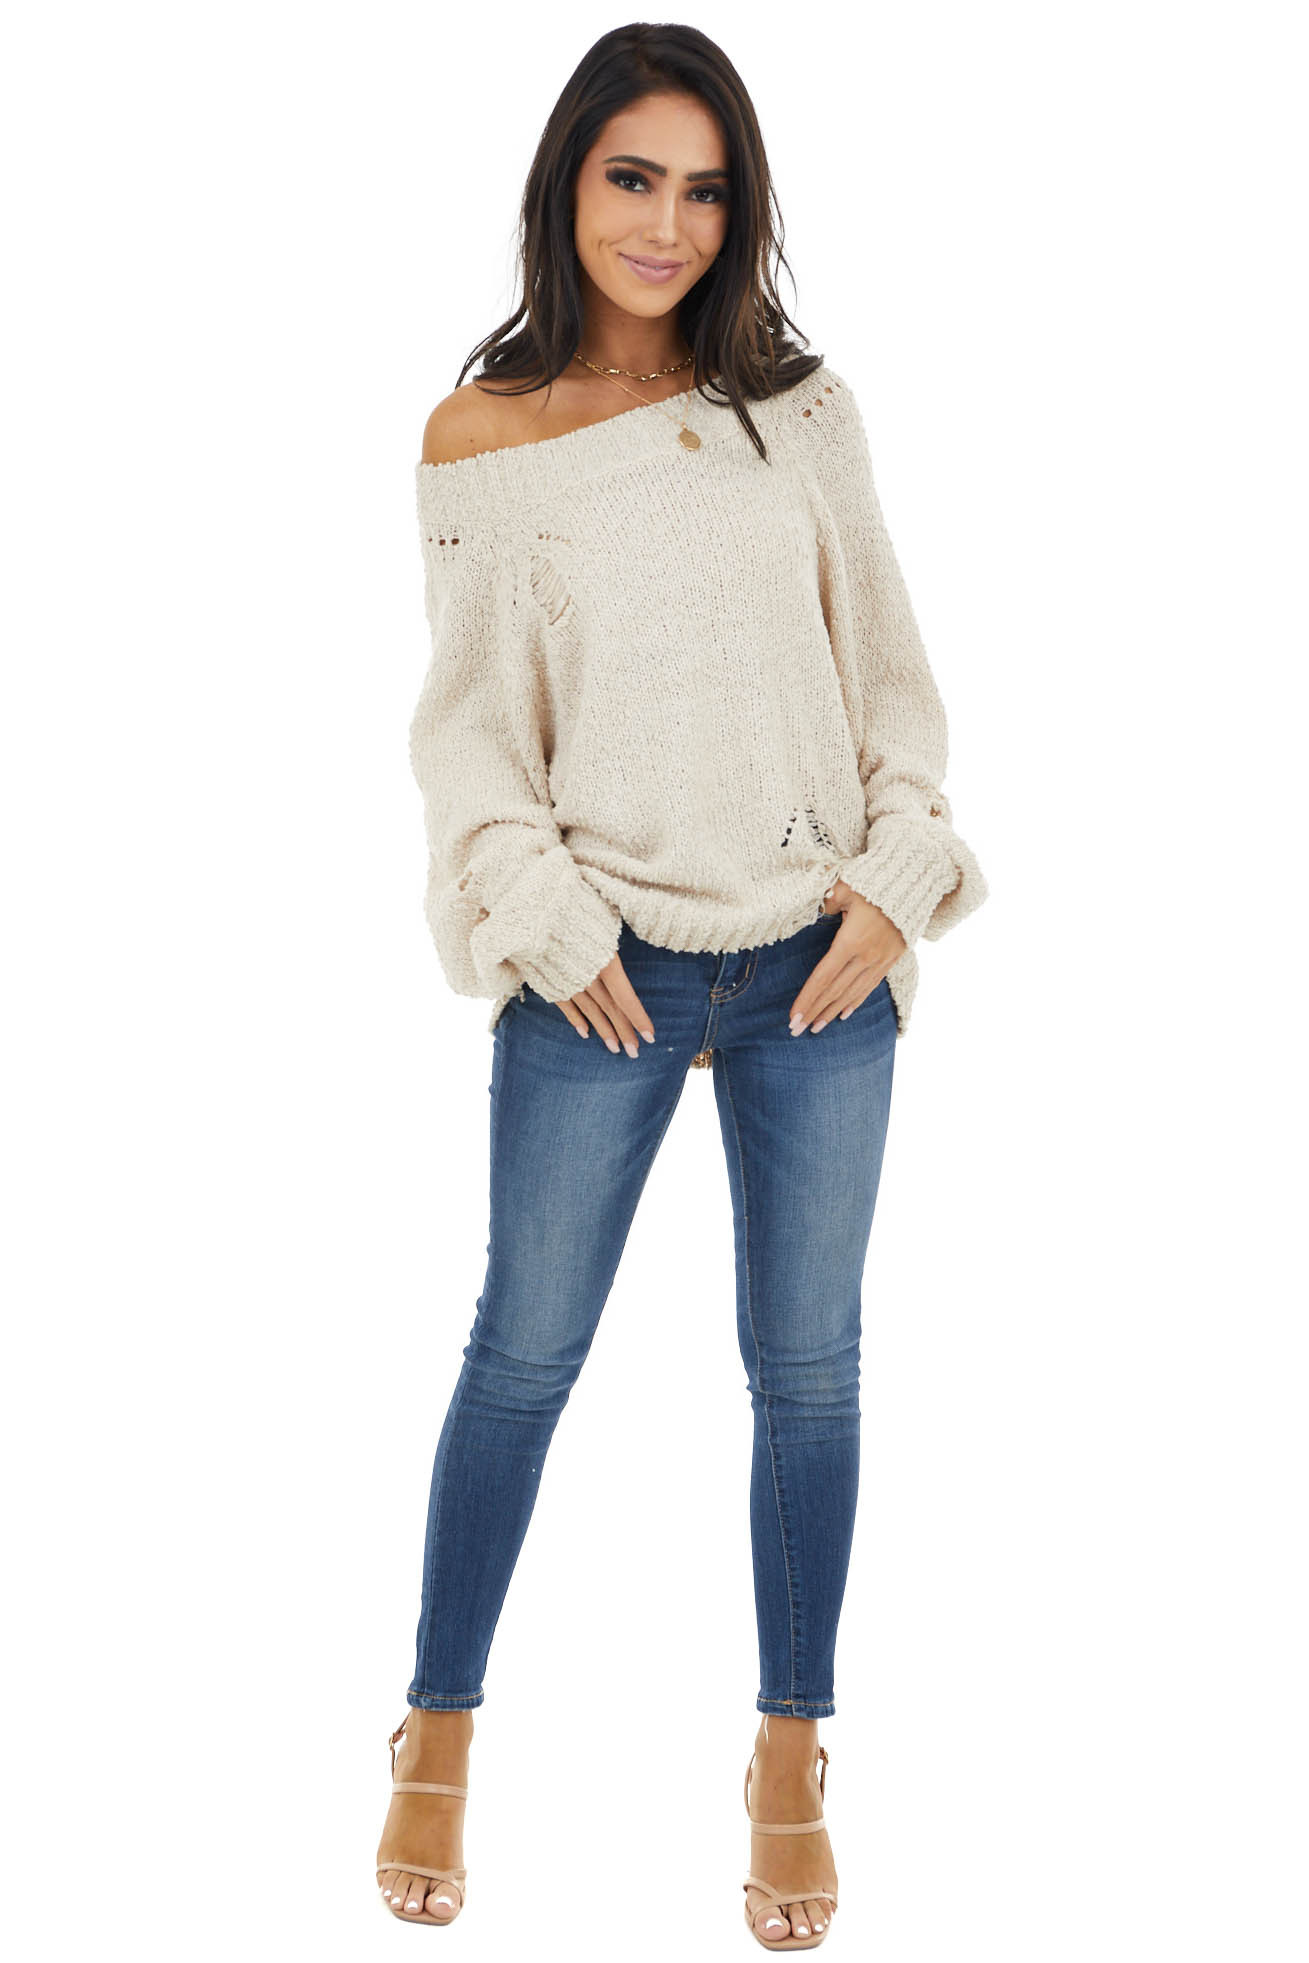 Oatmeal Sweater with Distressed Details and Bubble Sleeves